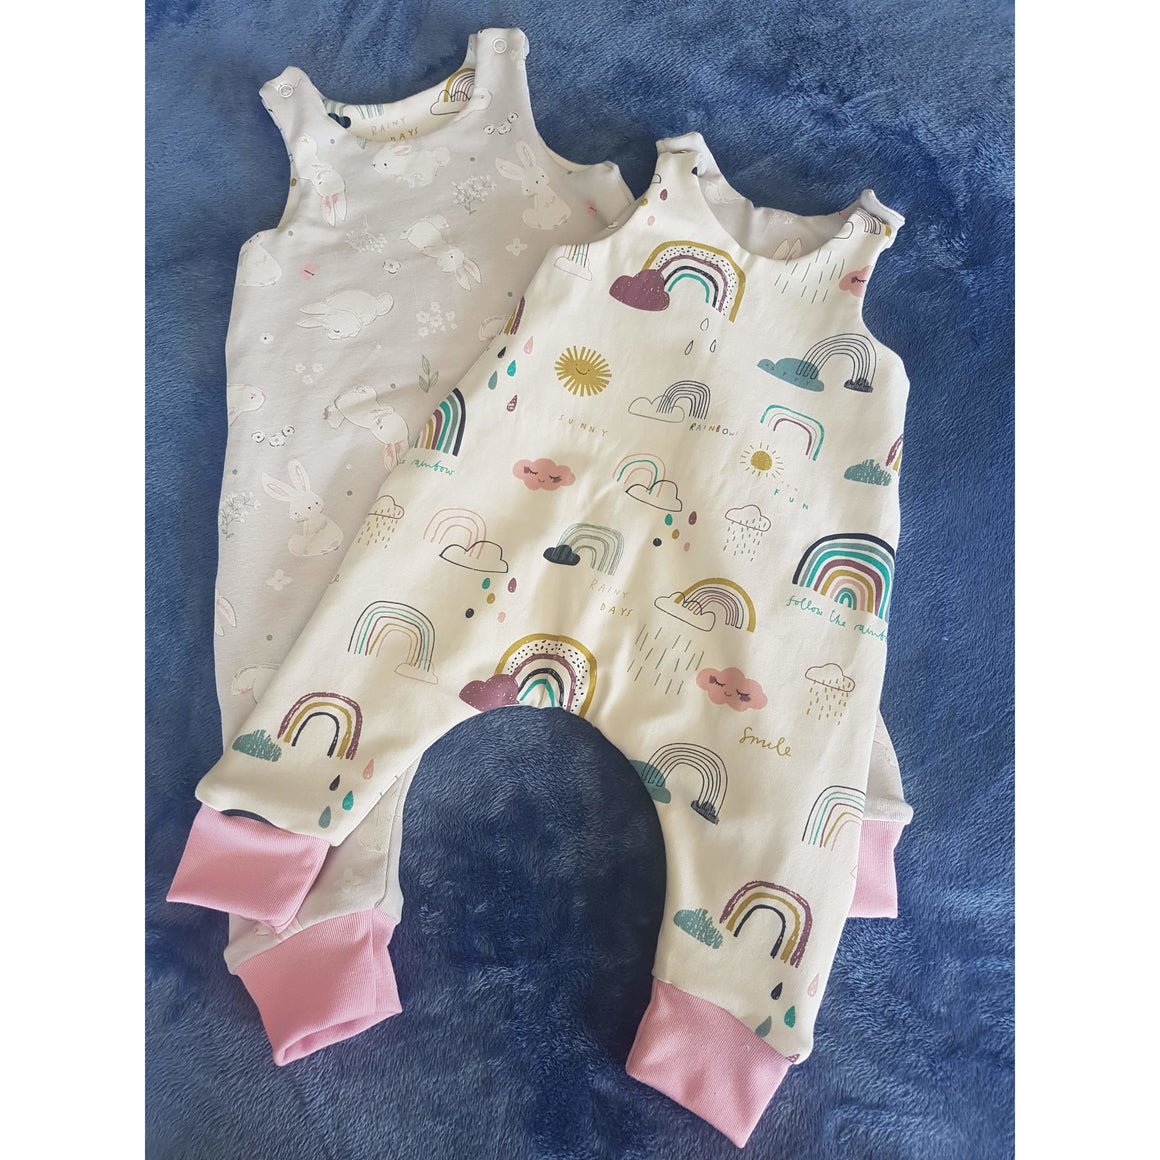 Reversible Overalls - Rainbows / White Bunnies